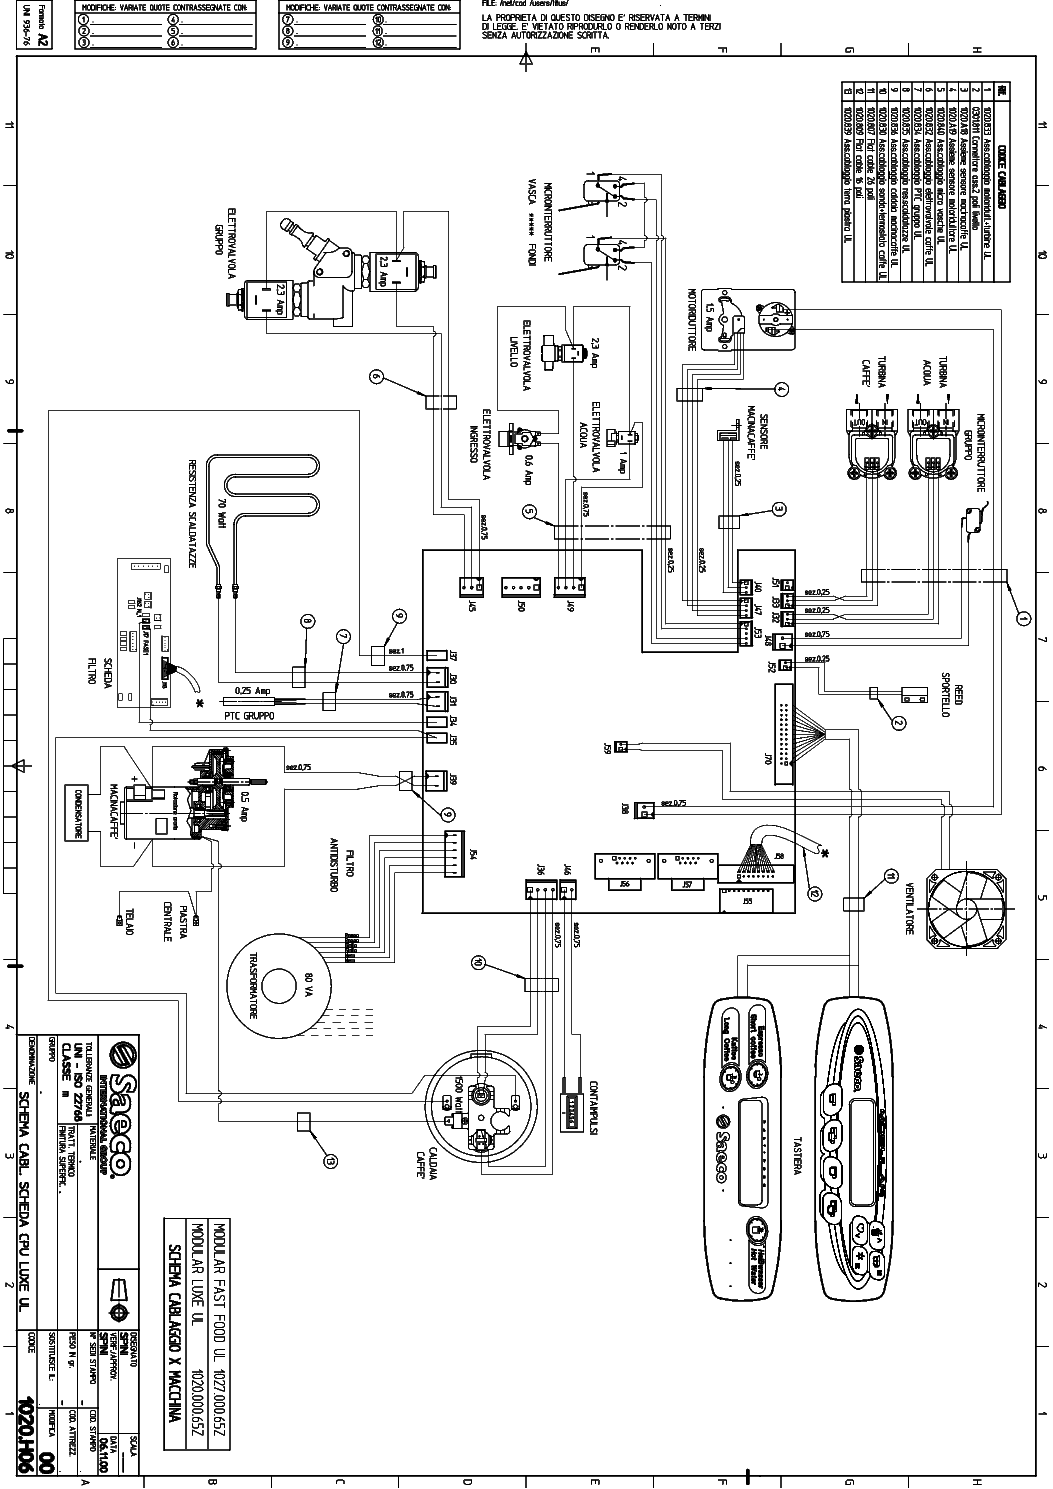 Saeco Modular Wiring Service Manual Download Schematics